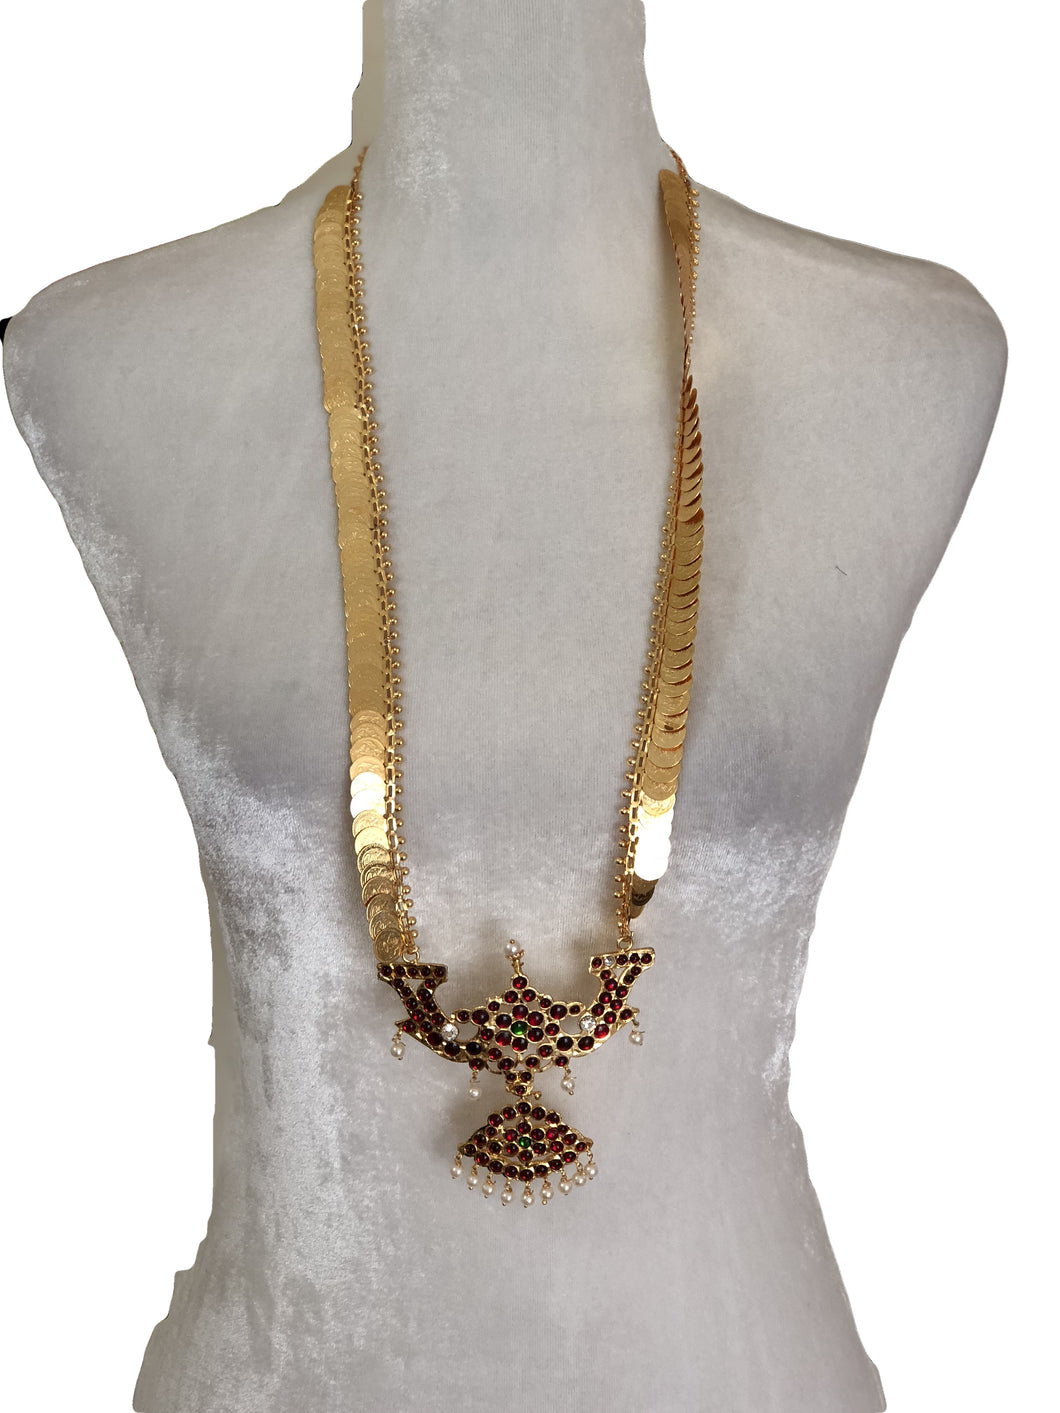 Goddess Lakshmi Coin Necklace with colored Enamel Design and White Pearl Beads - Also used as for Deity Jewelry